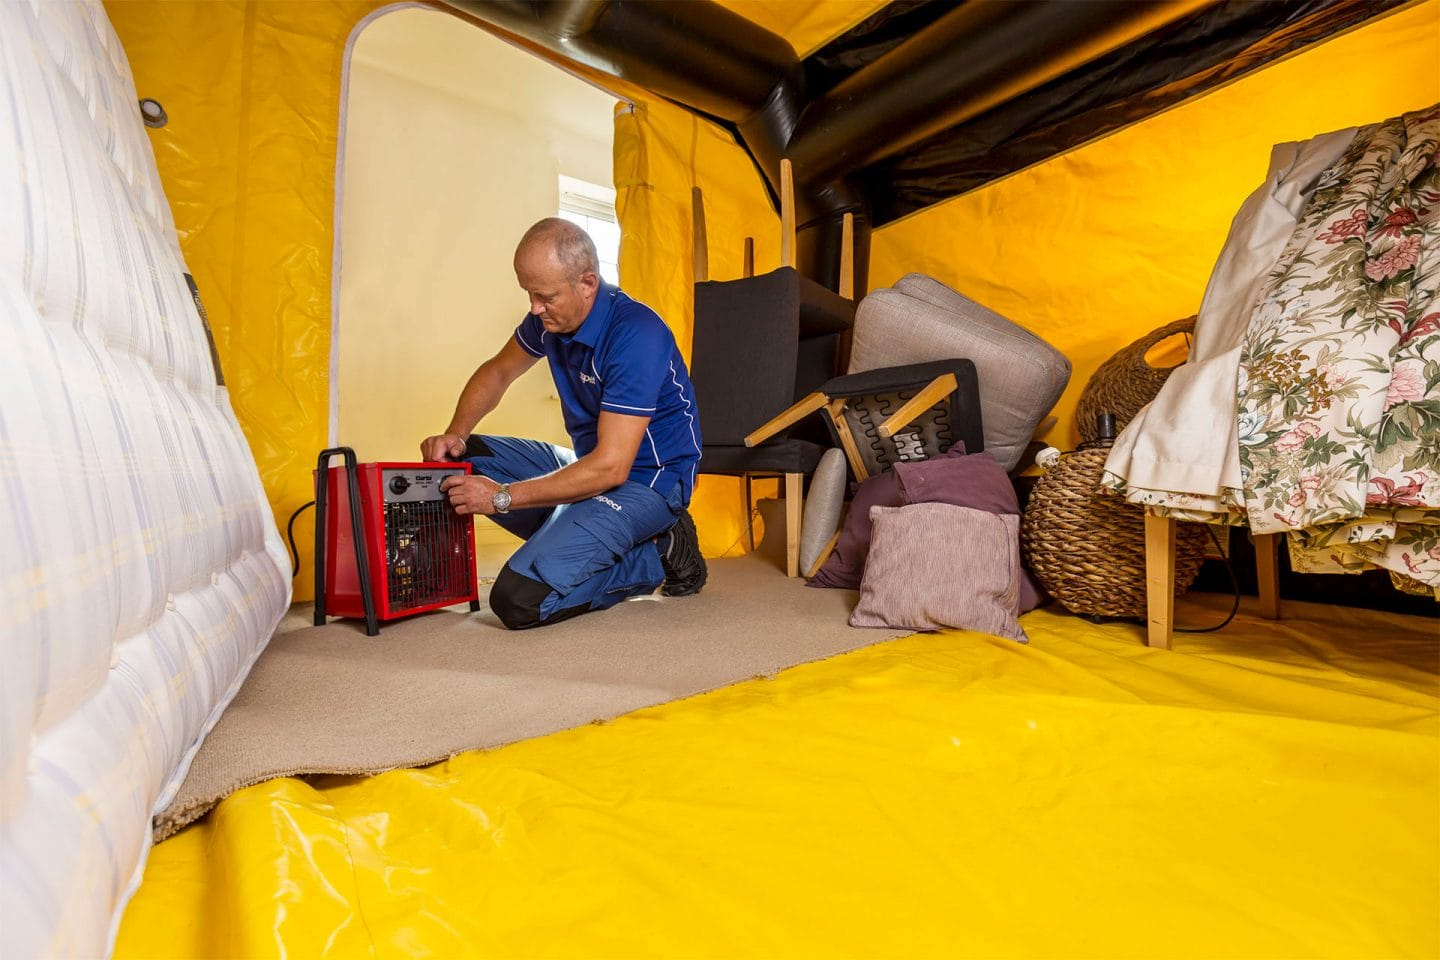 Bed bug specialist heat treatment